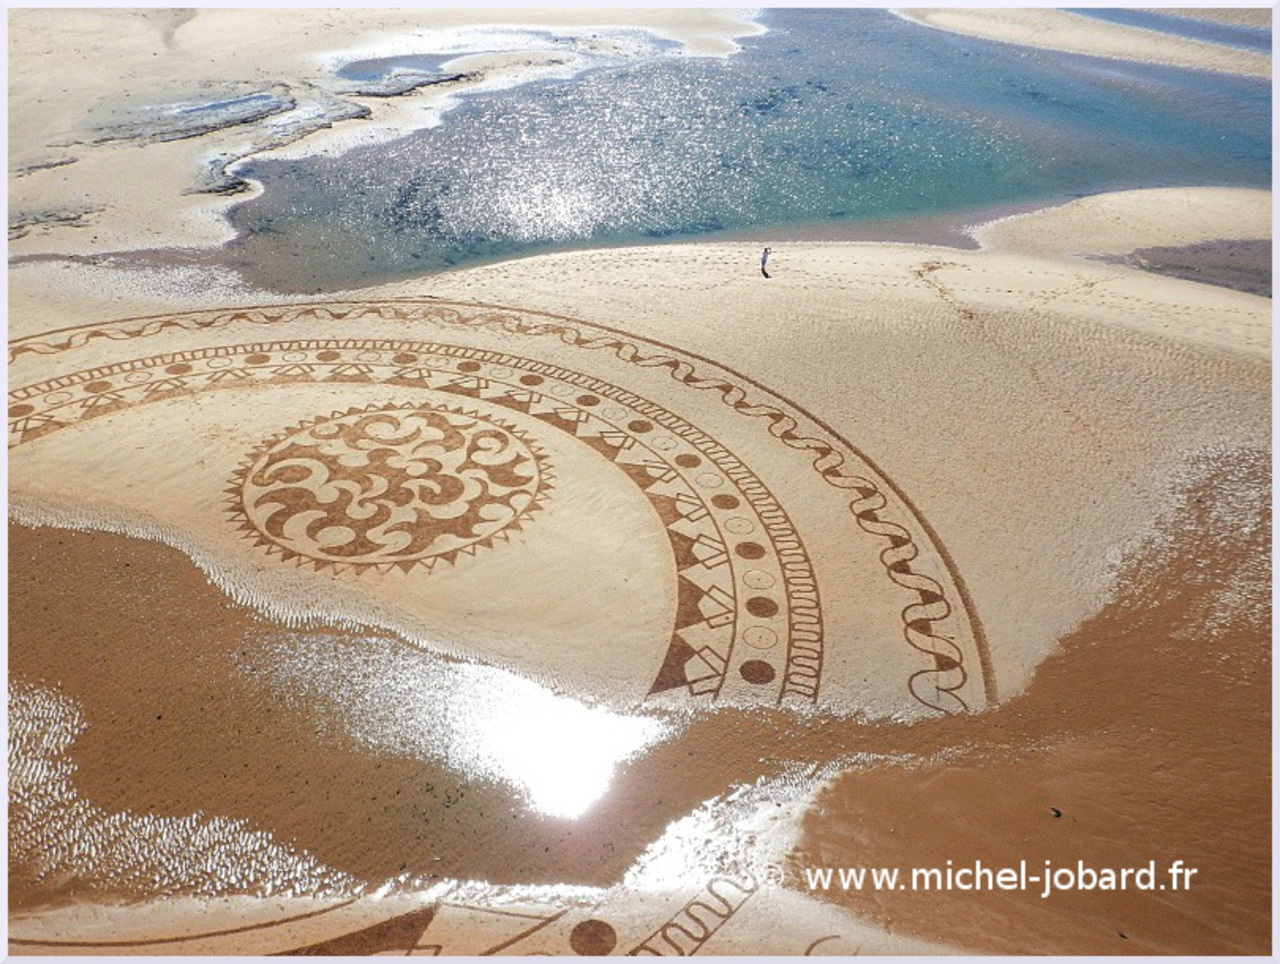 Fresque Beach art Mandala Blue, Michel Jobard